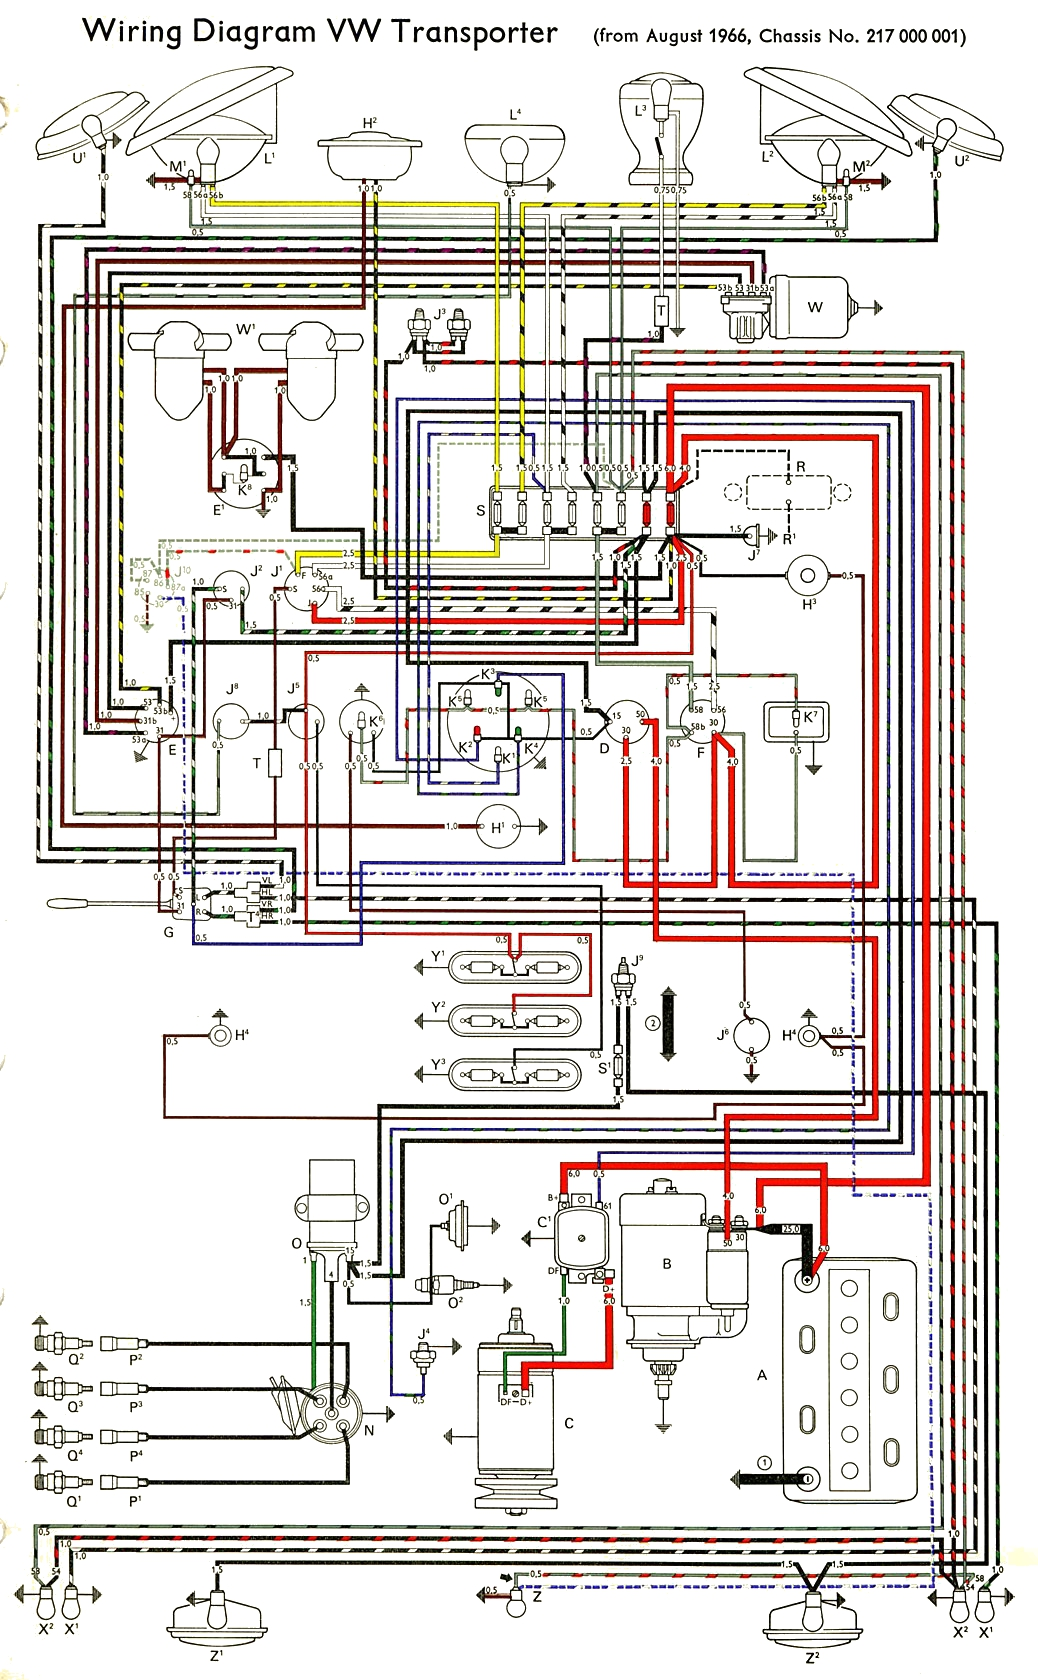 1960 vw bus wiring diagram thesamba.com :: type 2 wiring diagrams